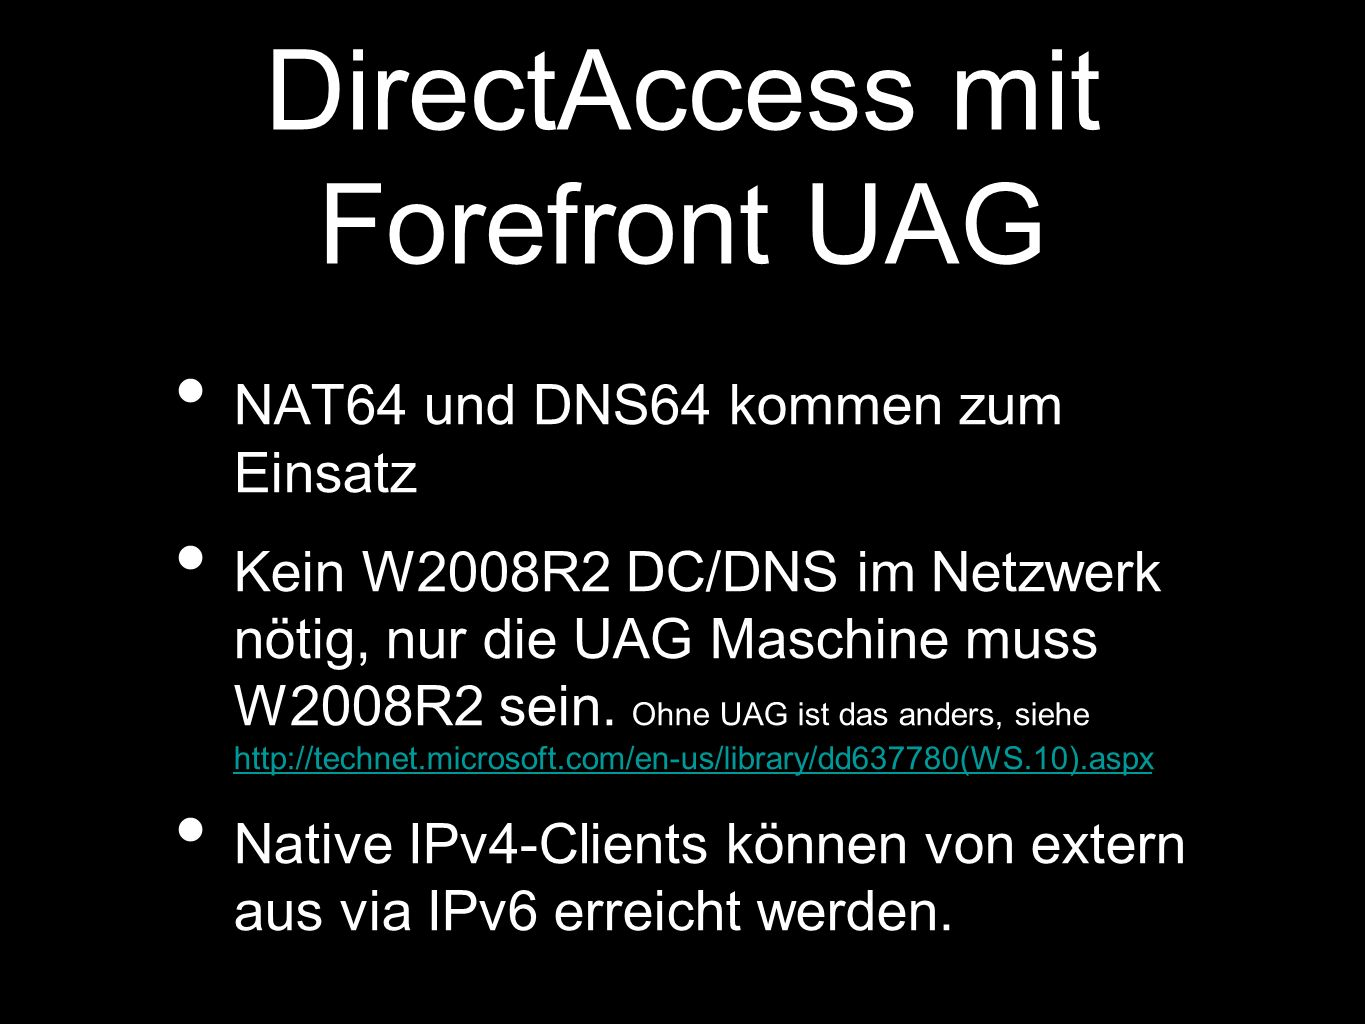 DirectAccess mit Forefront UAG